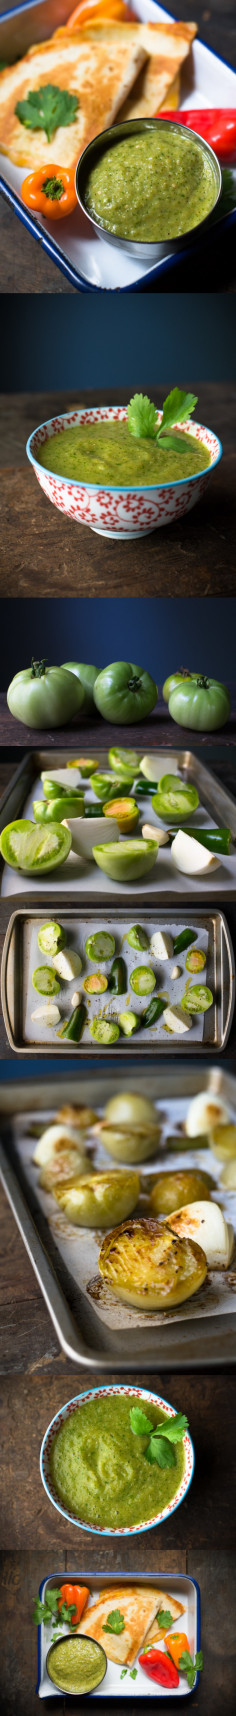 Roasted Green Tomato Salsa - Oakhurst Kitchen